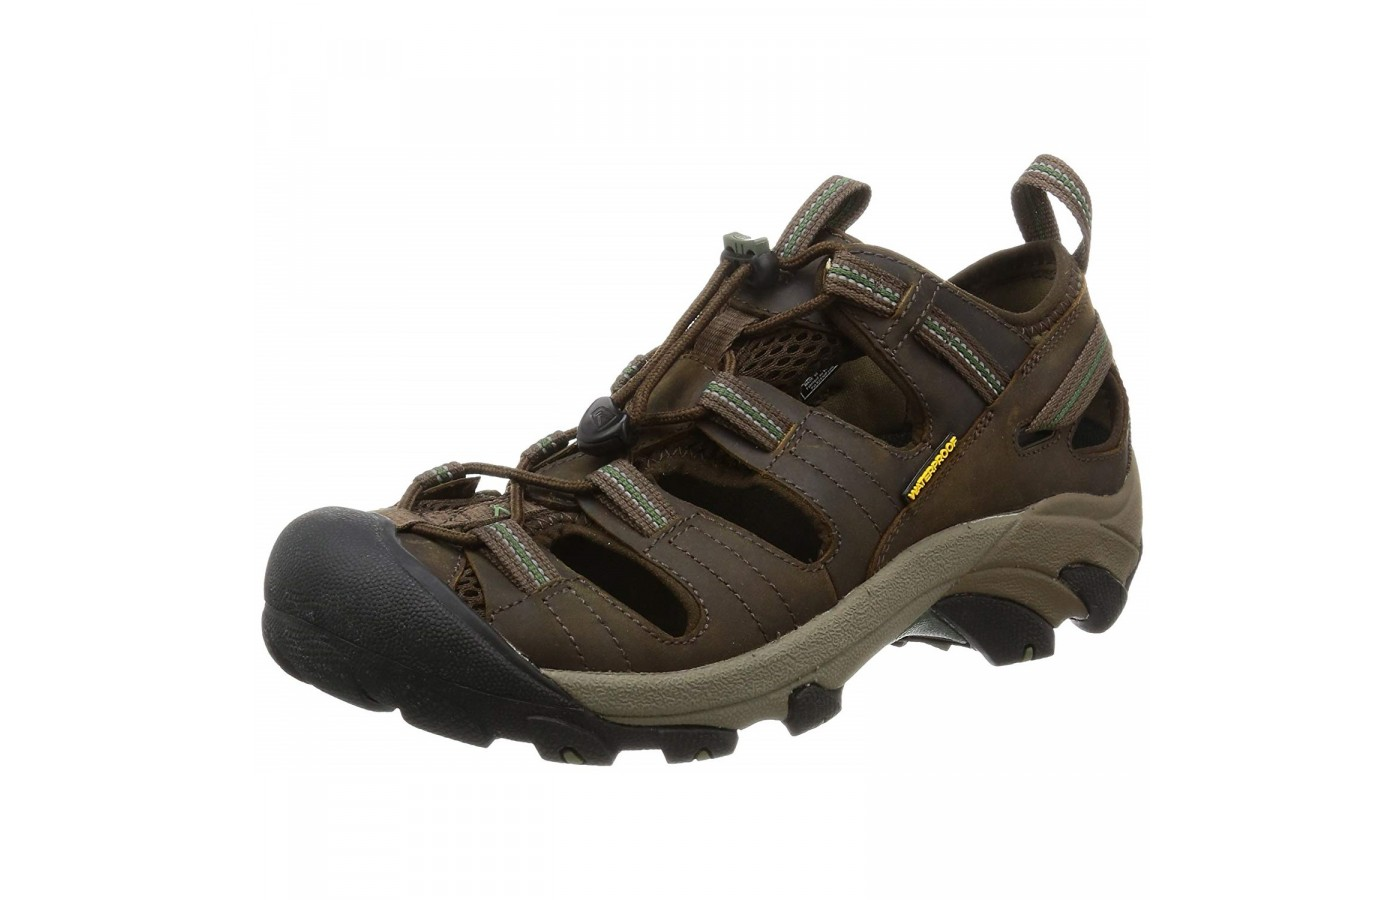 The Keen Arroyo II has a secure elastic lacing system for easy on and easy off.